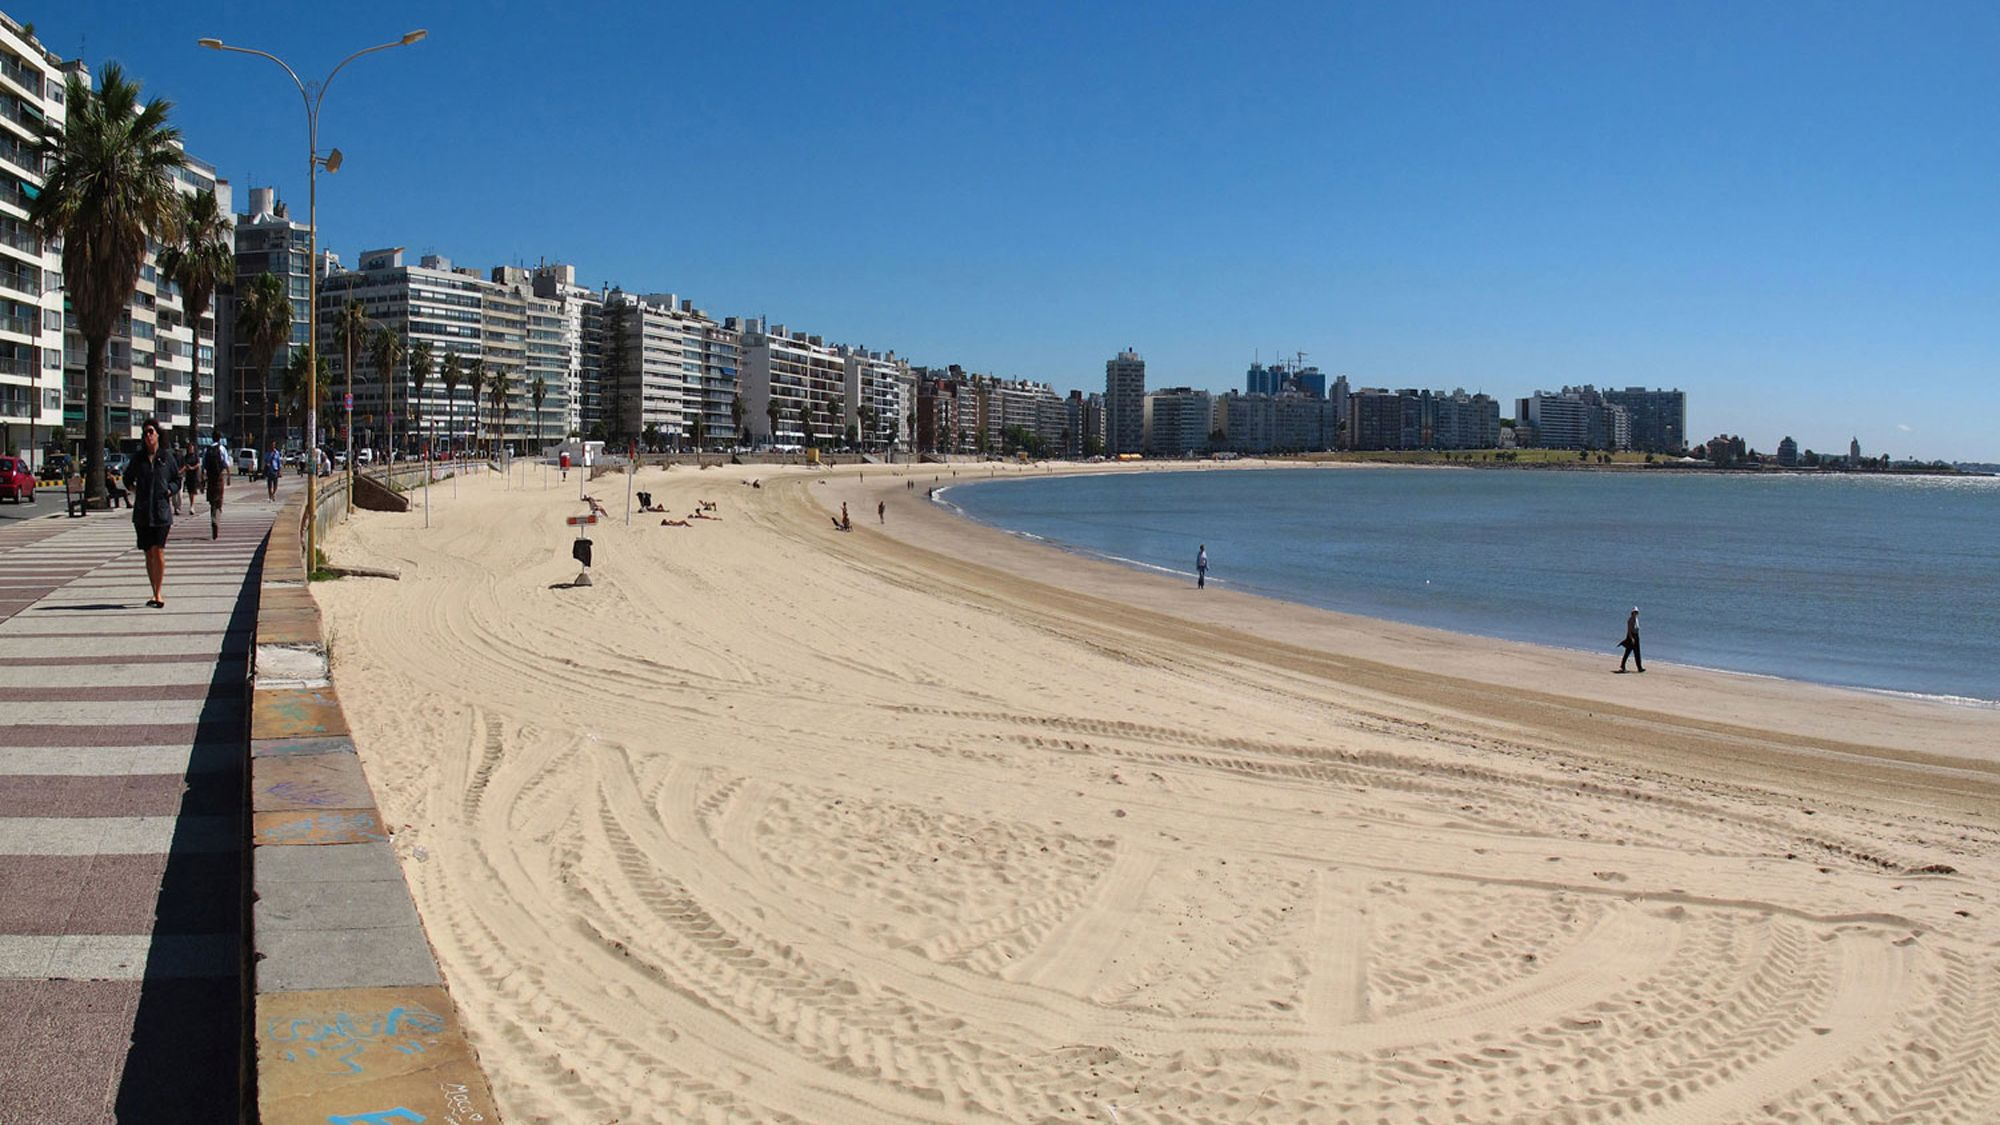 Serene view of the beach in Montevideo